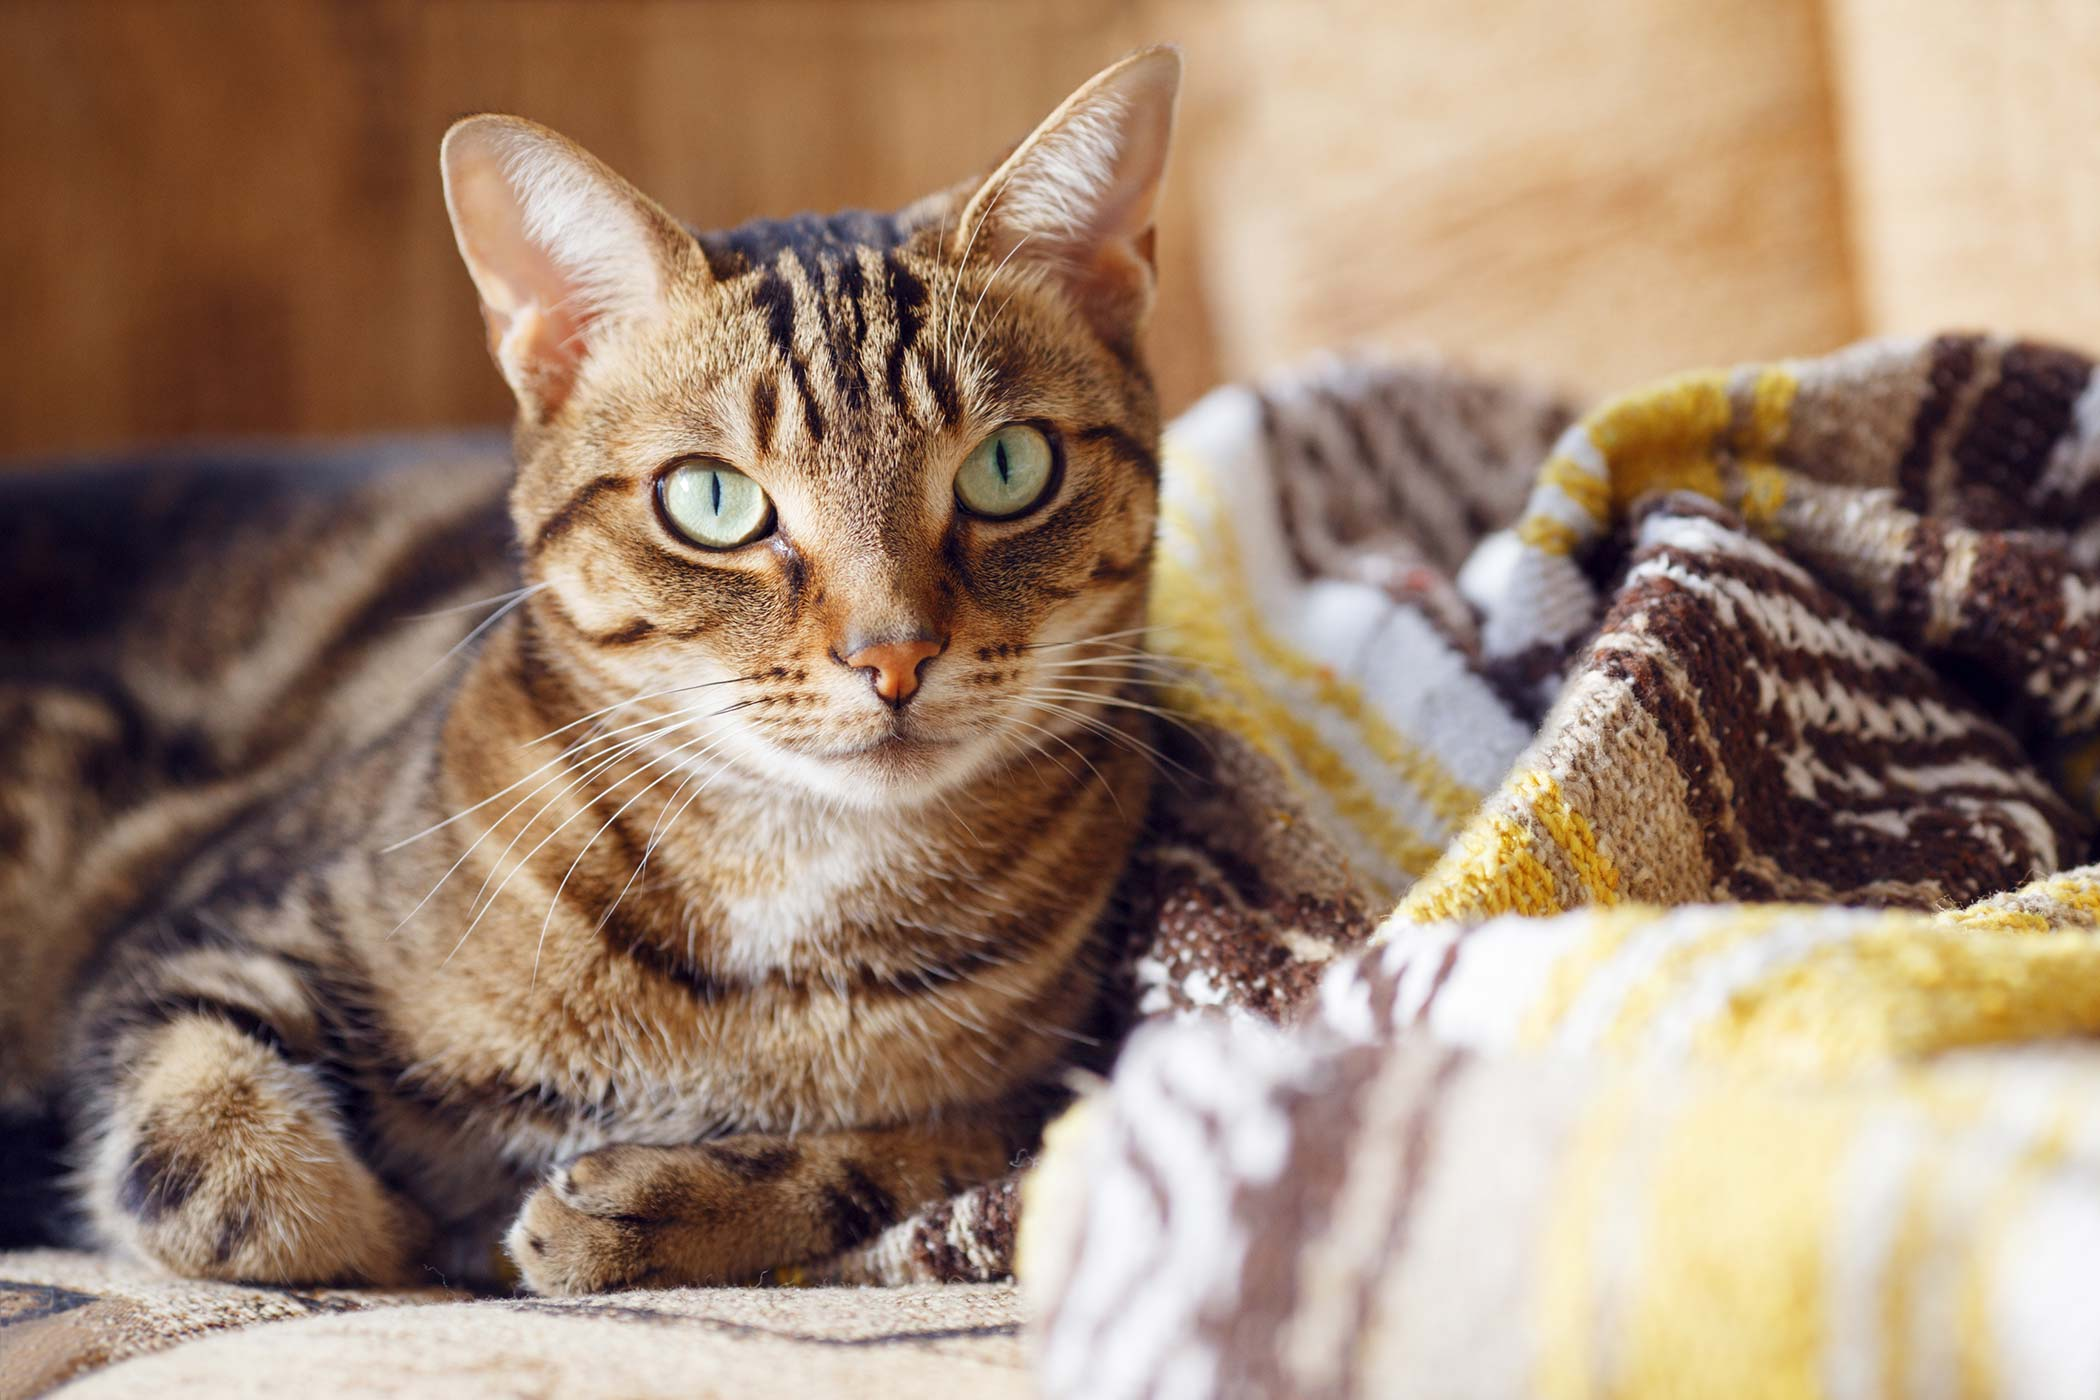 Feline Herpesvirus Infection in Cats in Cats - Symptoms, Causes, Diagnosis, Treatment, Recovery, Management, Cost